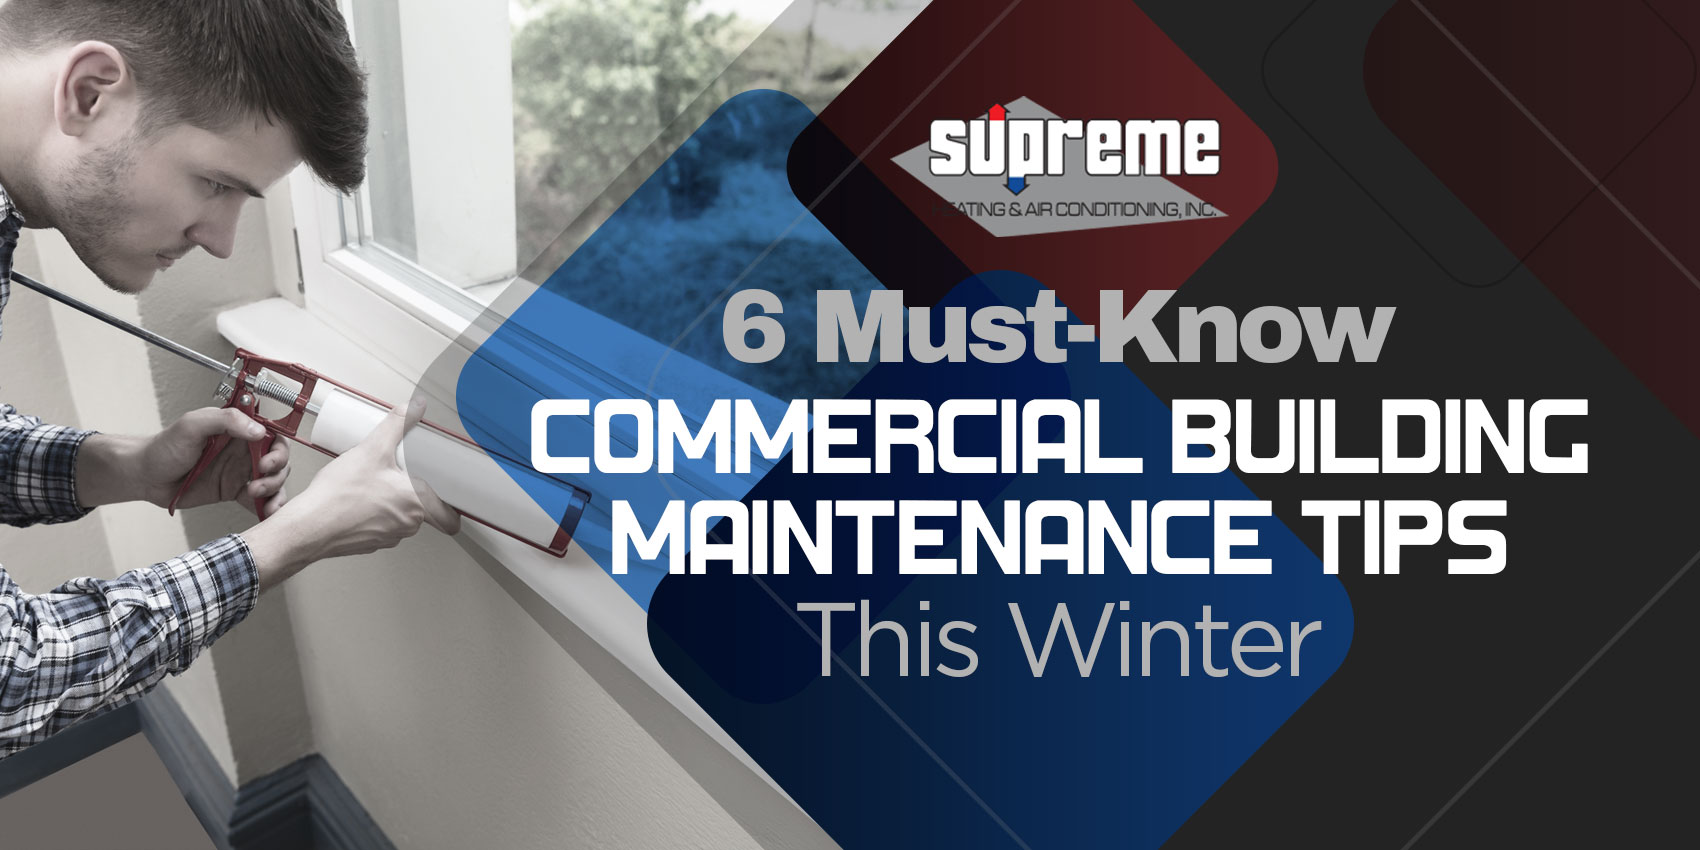 6 Must-Know Commercial Building Maintenance Tips This Winter